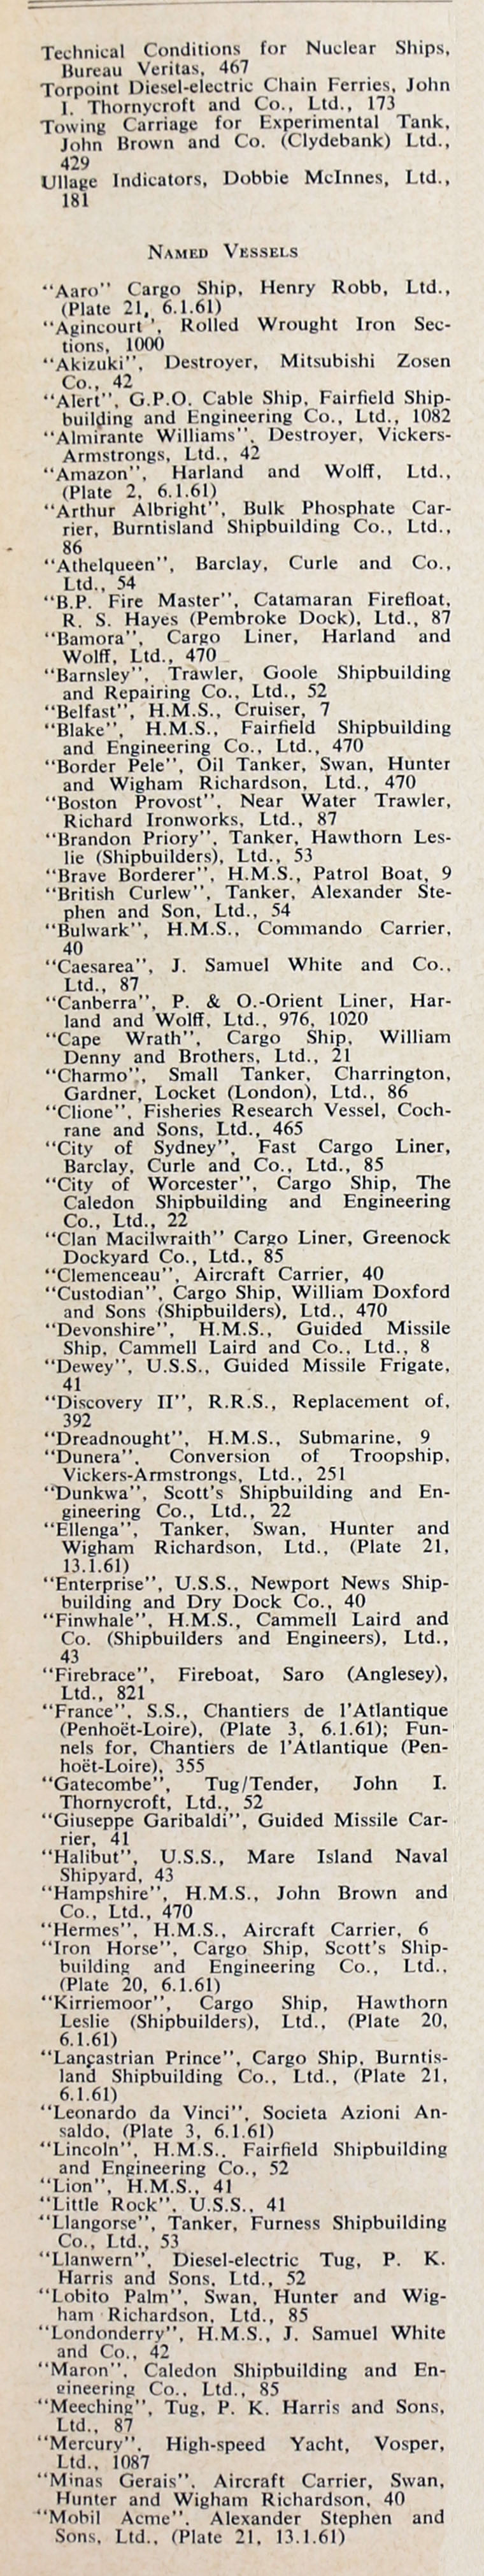 The Engineer 1961 Jan-Jun: Index: Sections 2 and 3